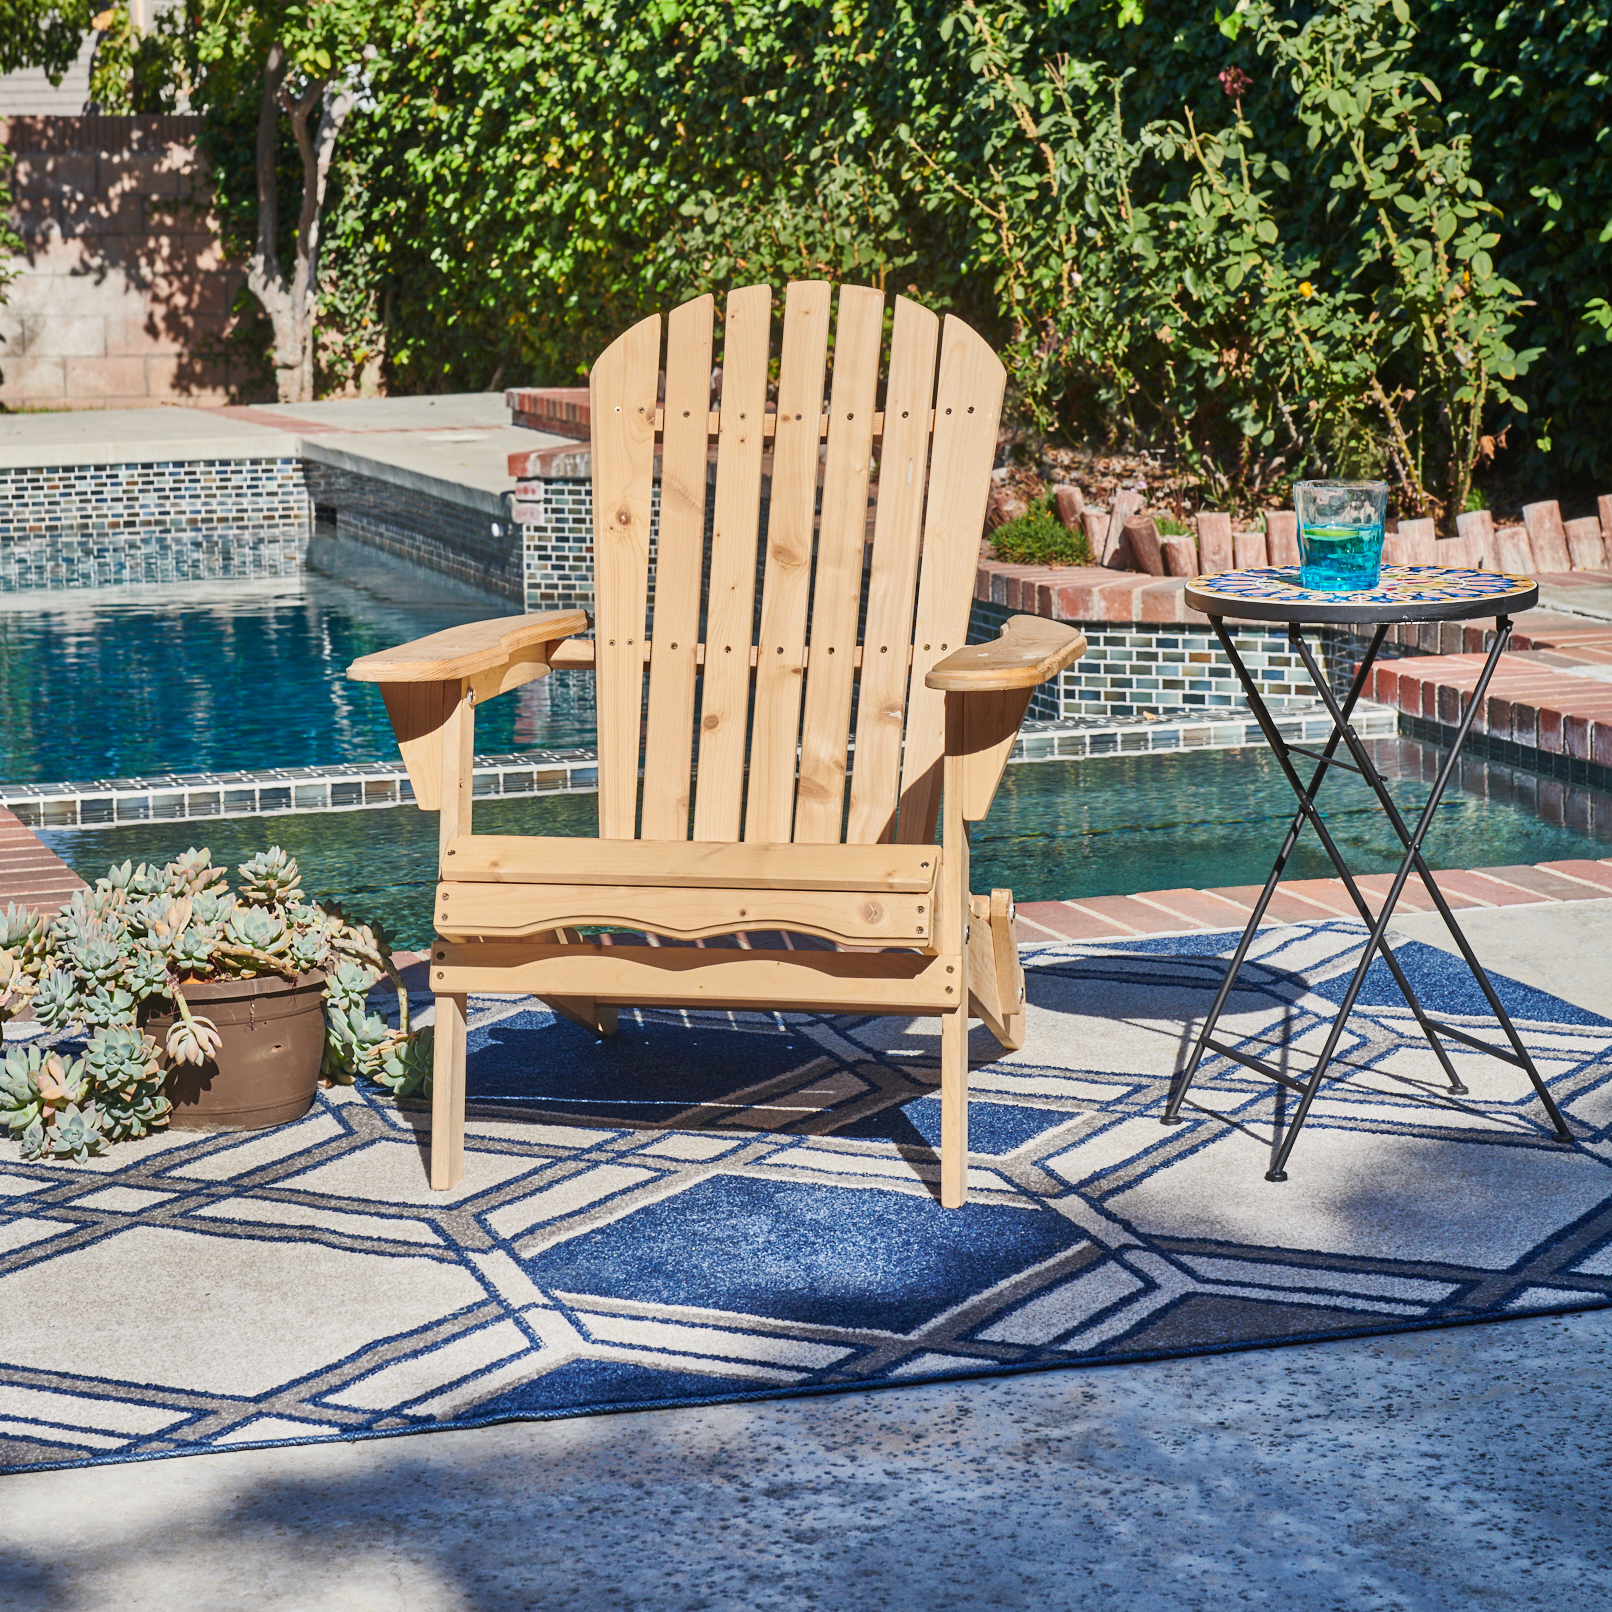 Incadozo Adirondack Chair, Natural Wood Color